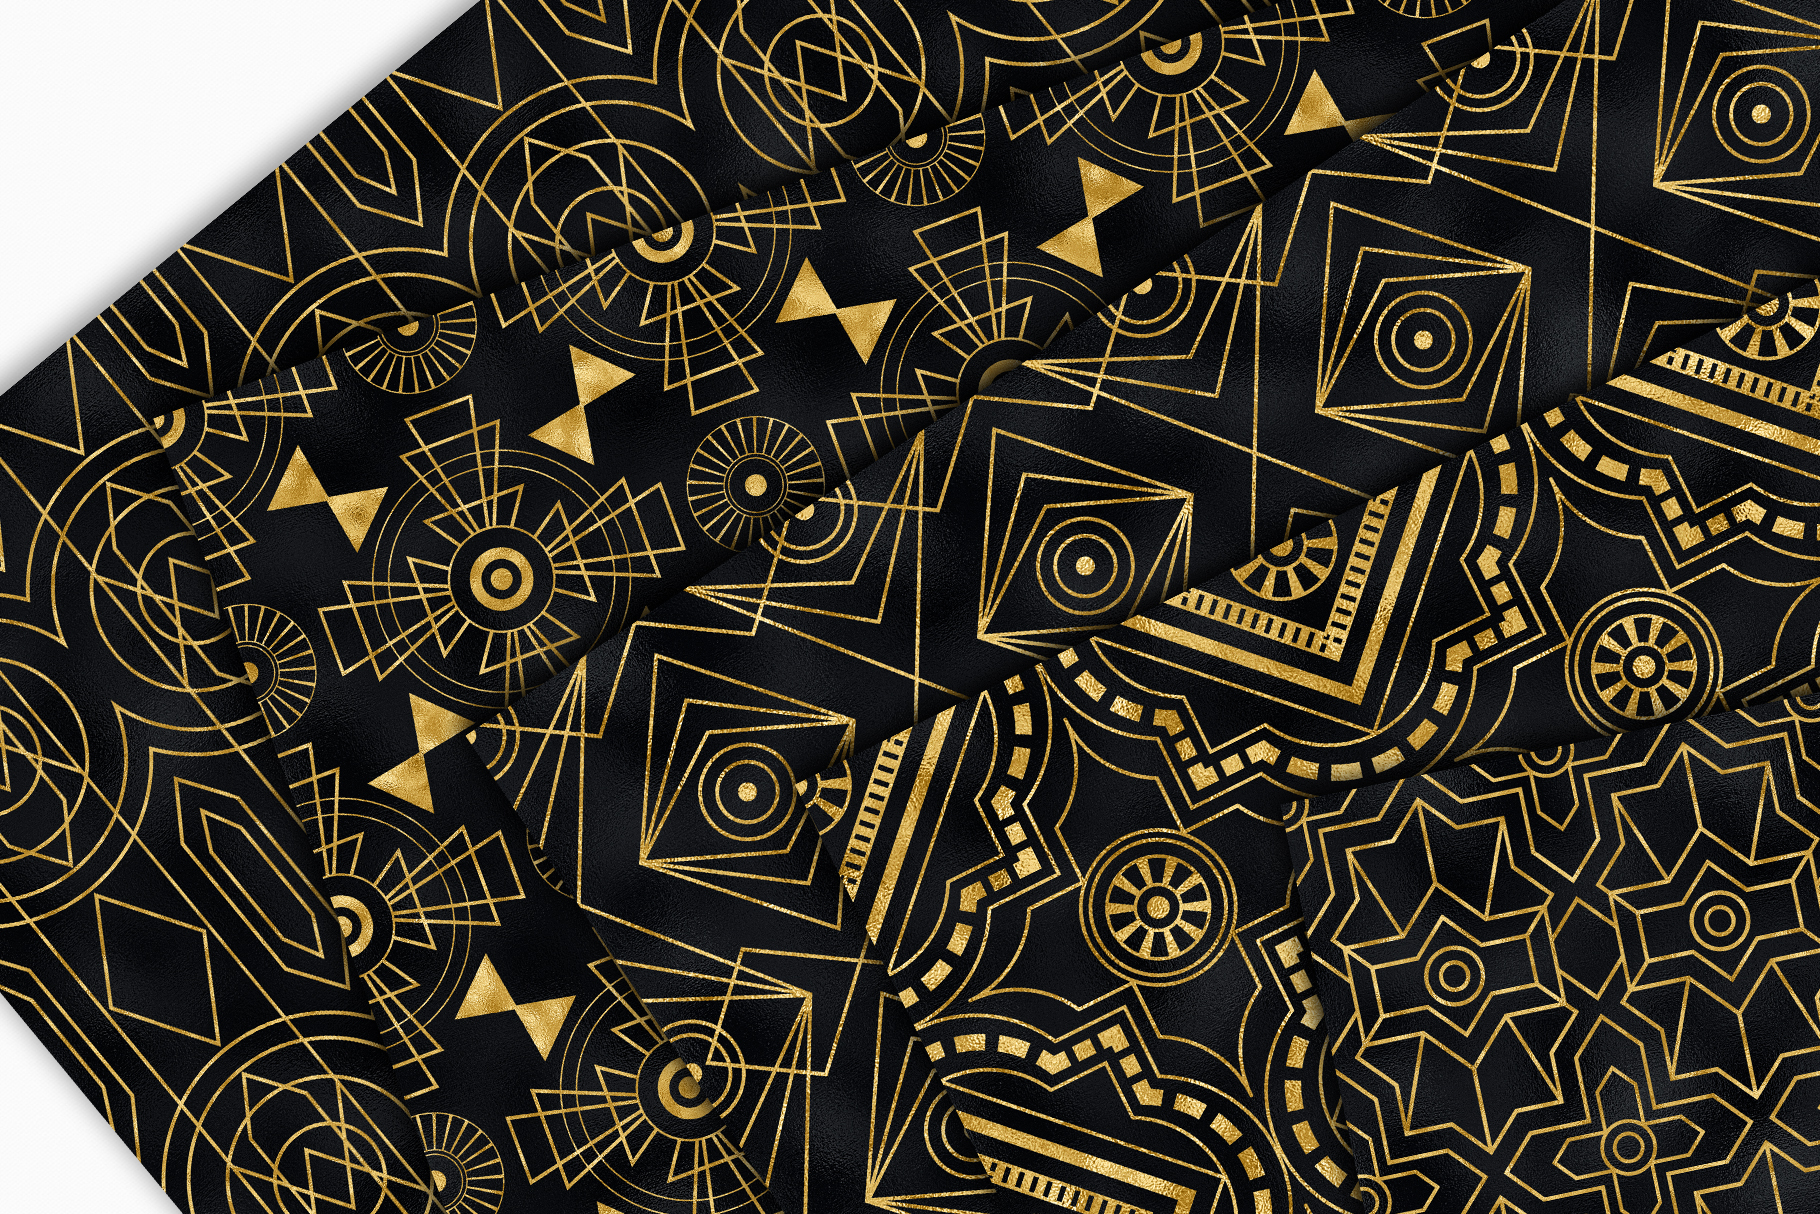 Geometric Art Deco Patterns - 20 Seamless Vector Patterns example image 15